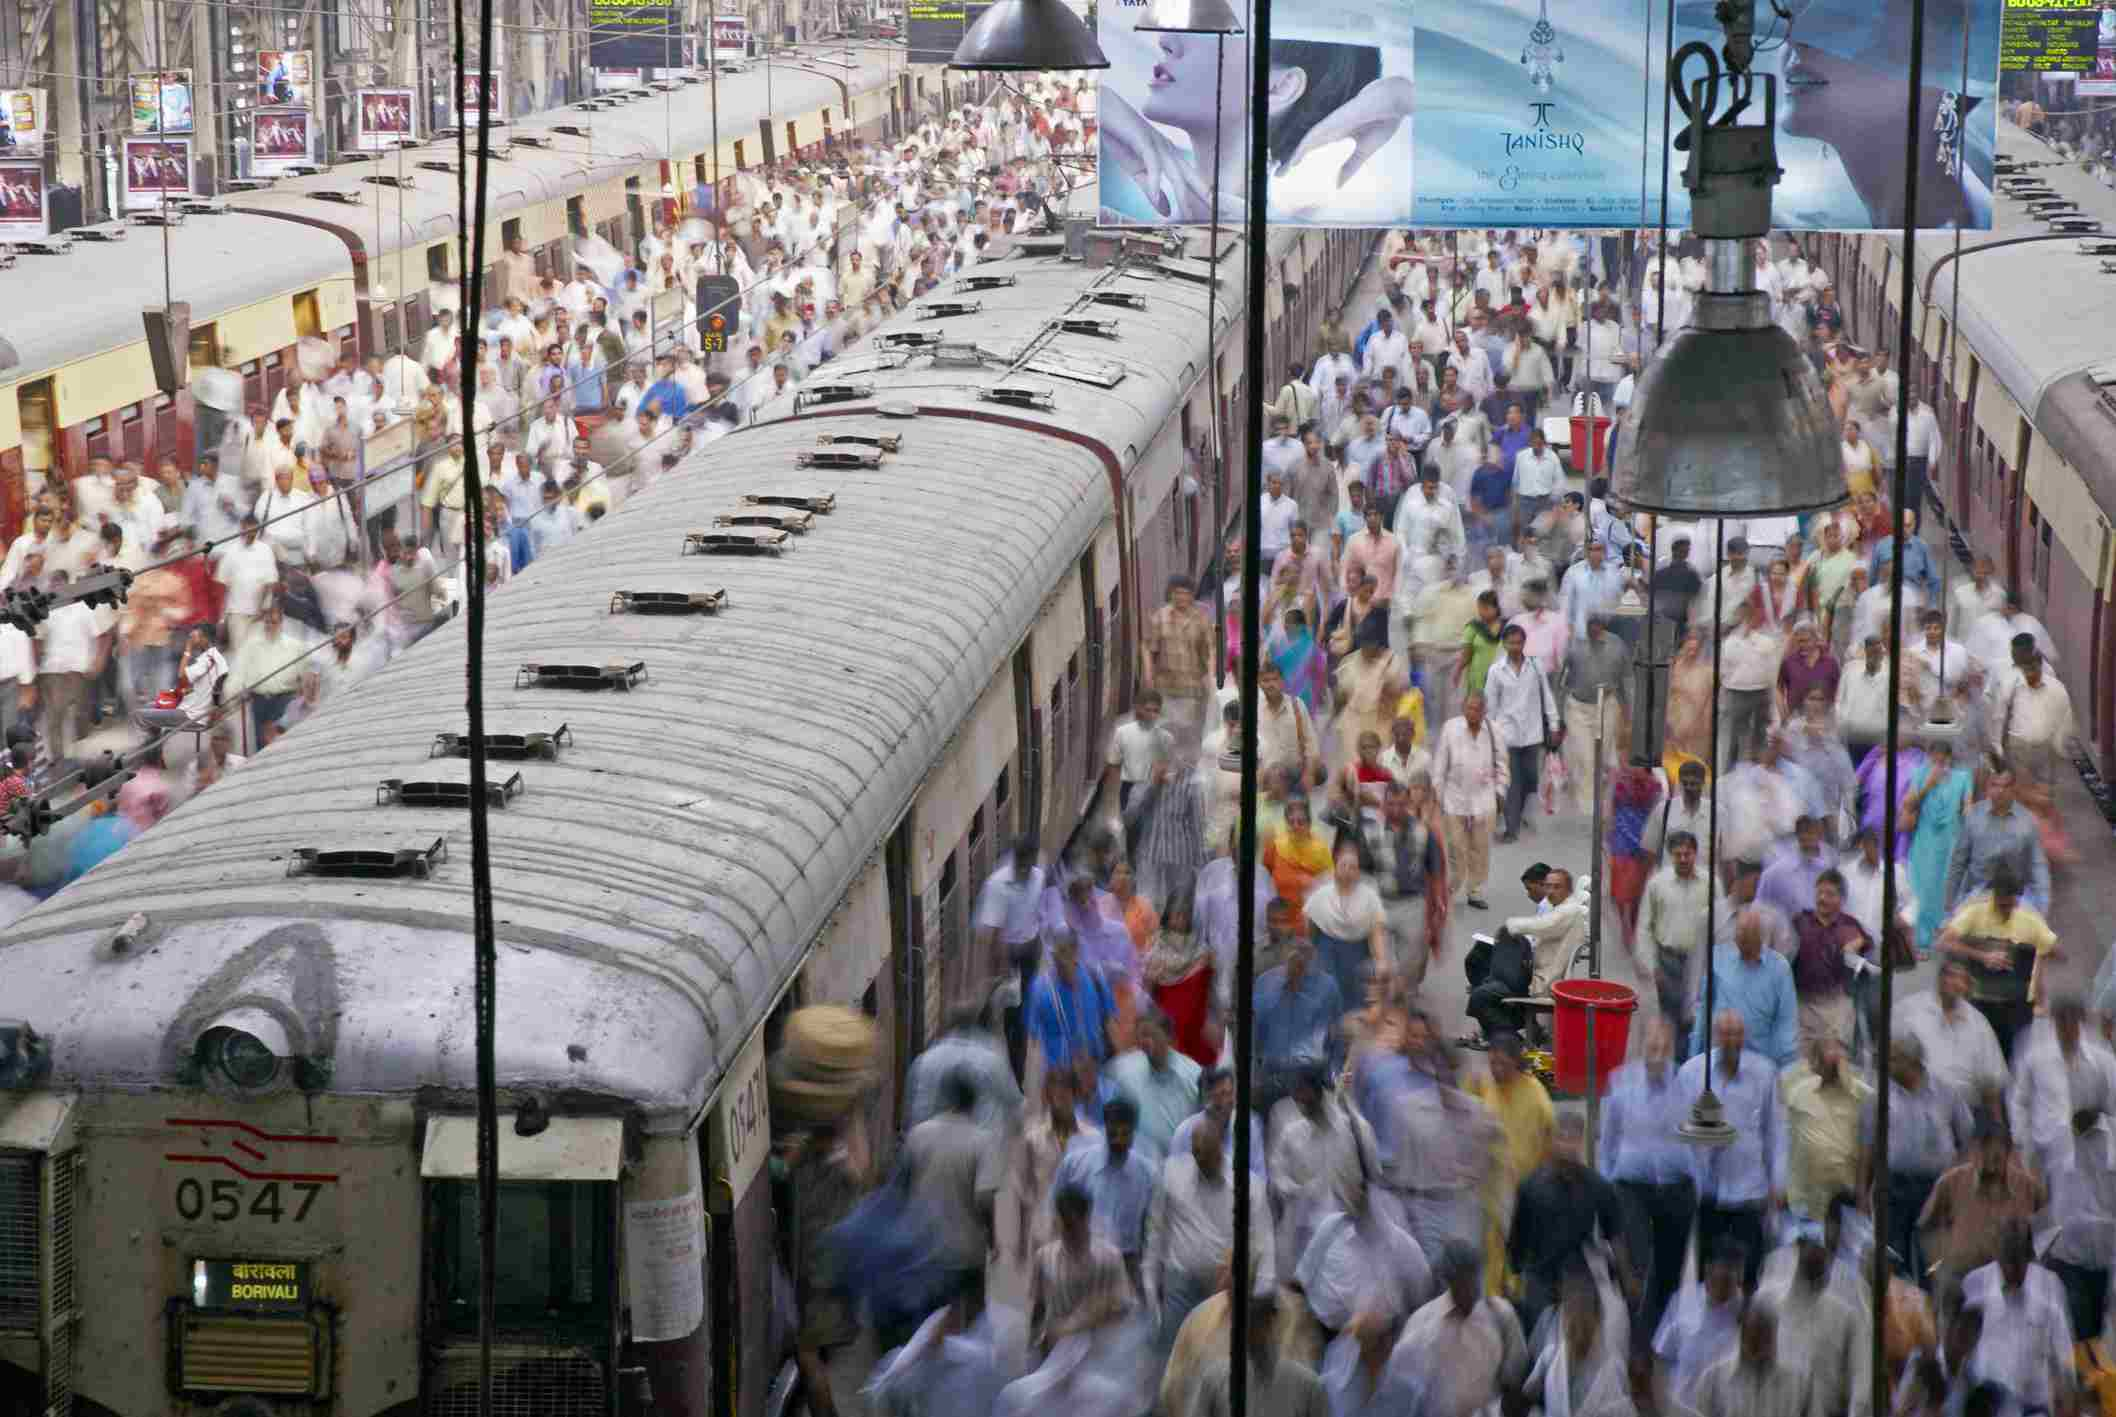 India, Mumbai, Churchgate Station, trains and platforms packed with commuters